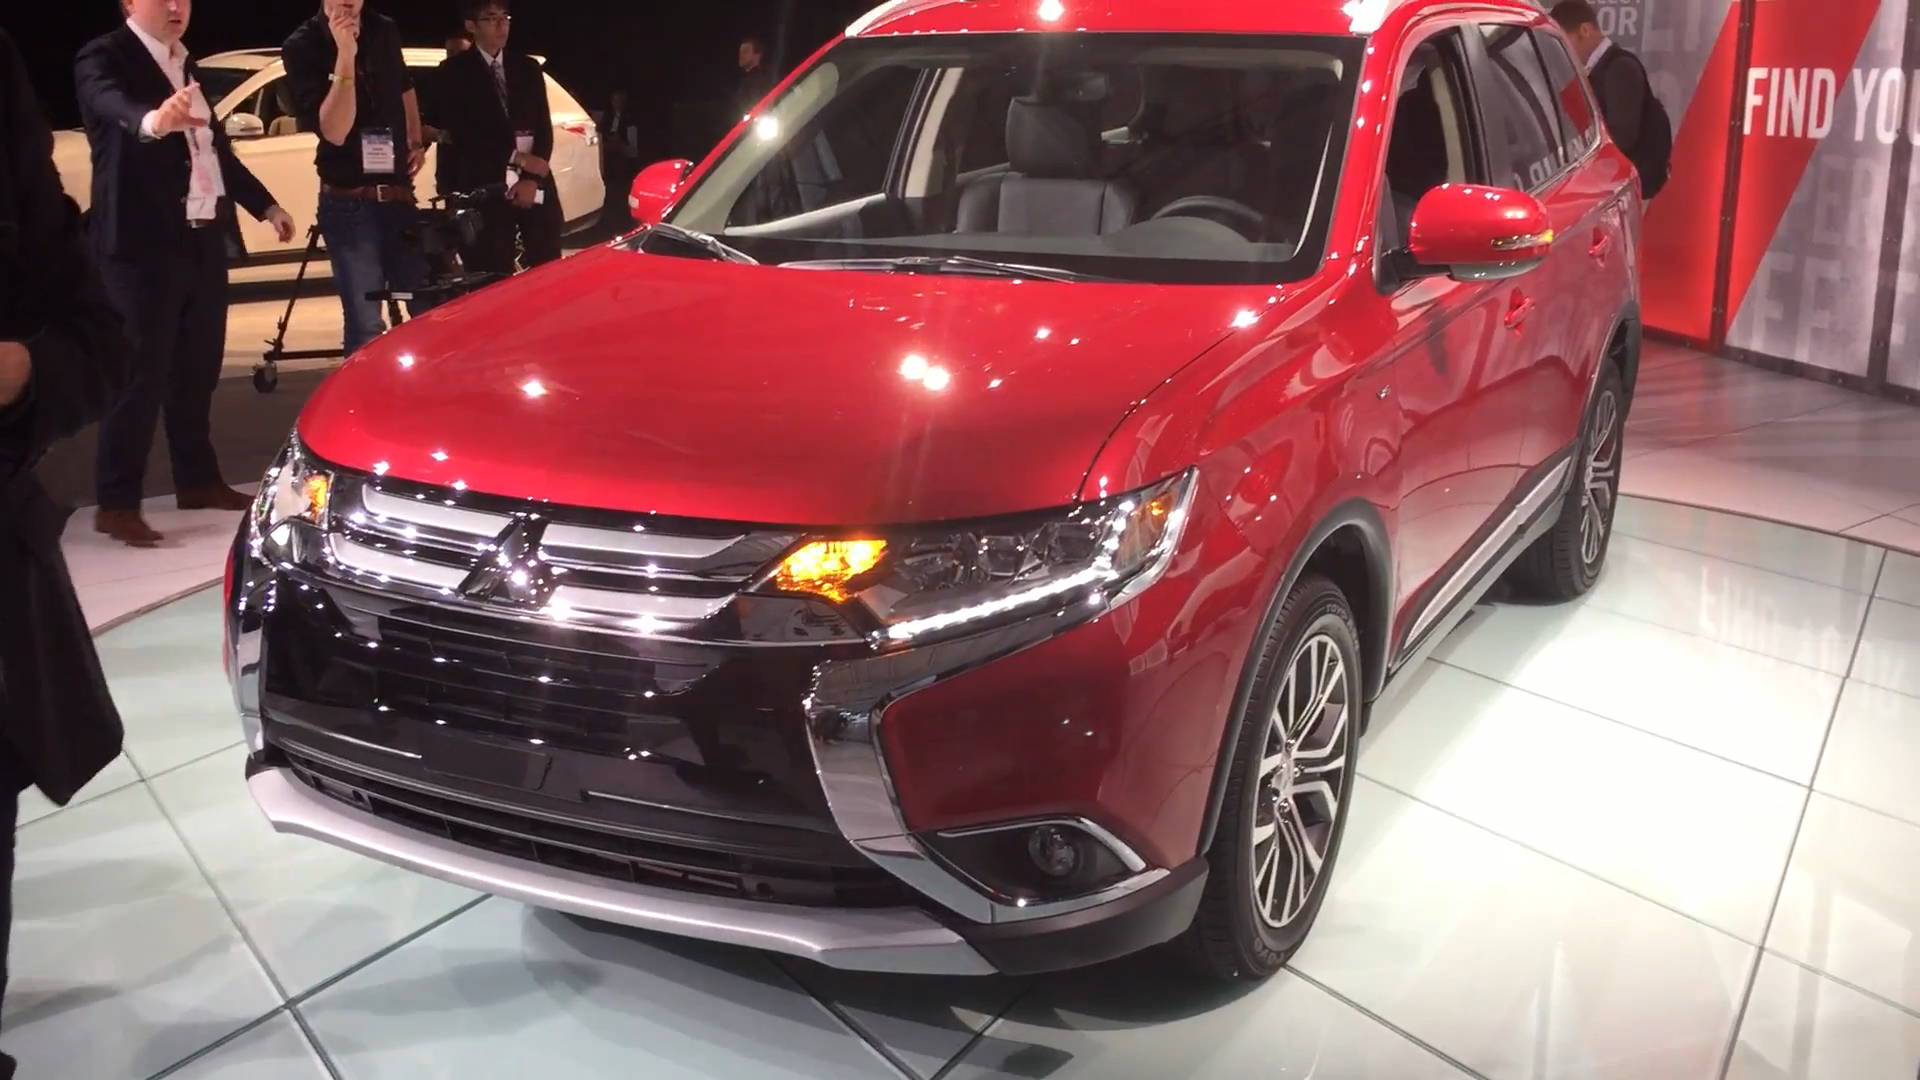 2016 Mitsubishi Outlander Walkaround | 2015 NYIAS | Autoblog Short Cuts